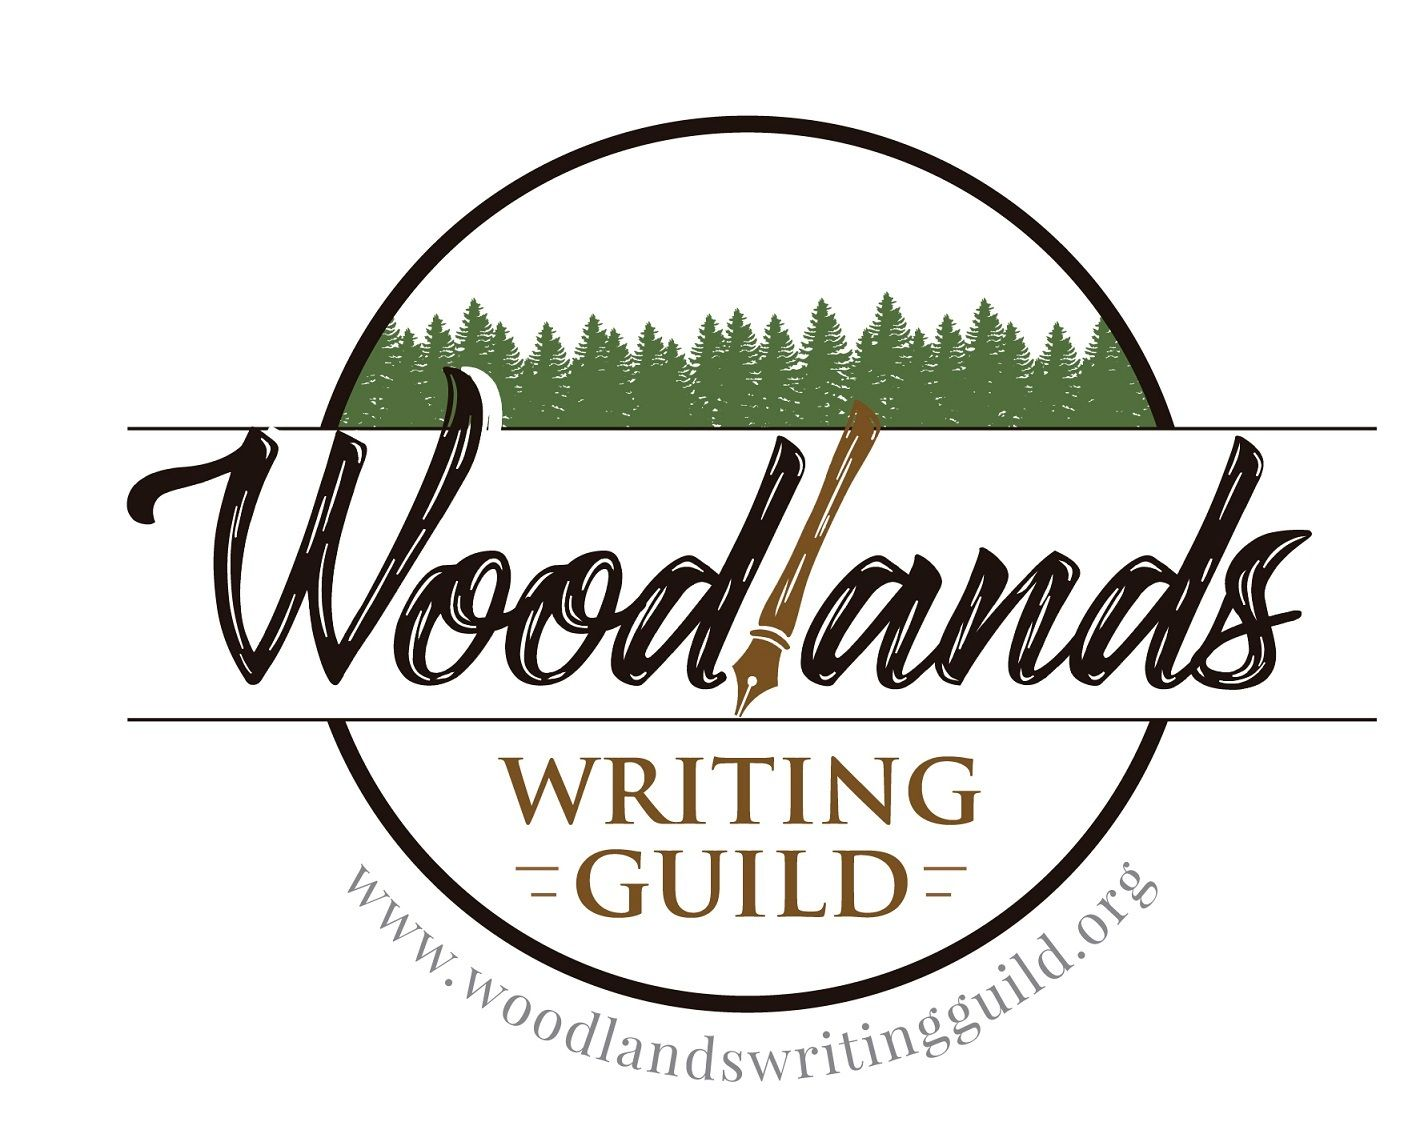 Woodlands Writing Guild